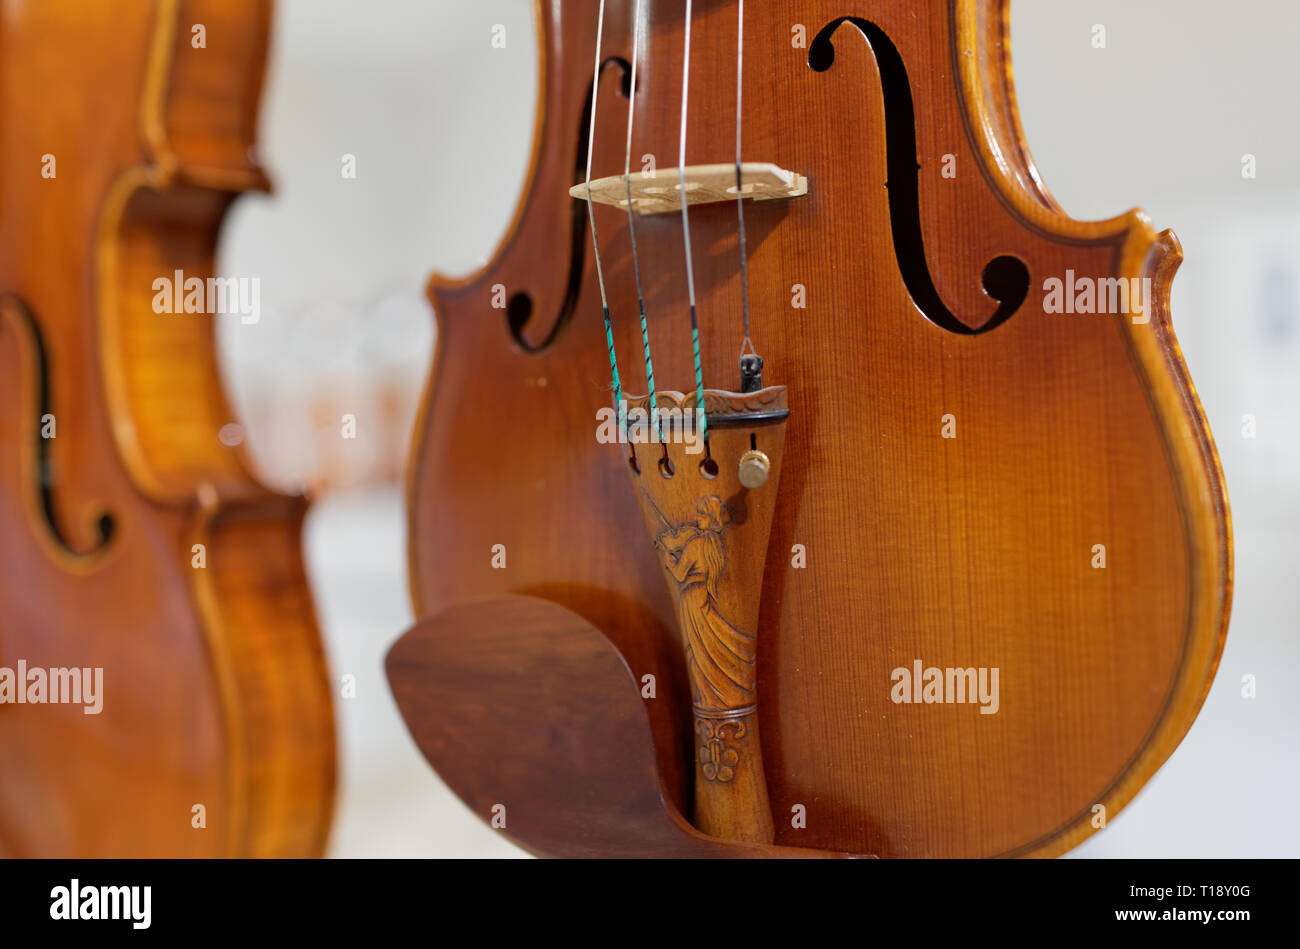 St  Petersburg, Russia - March 18, 2019: Musical instruments on the